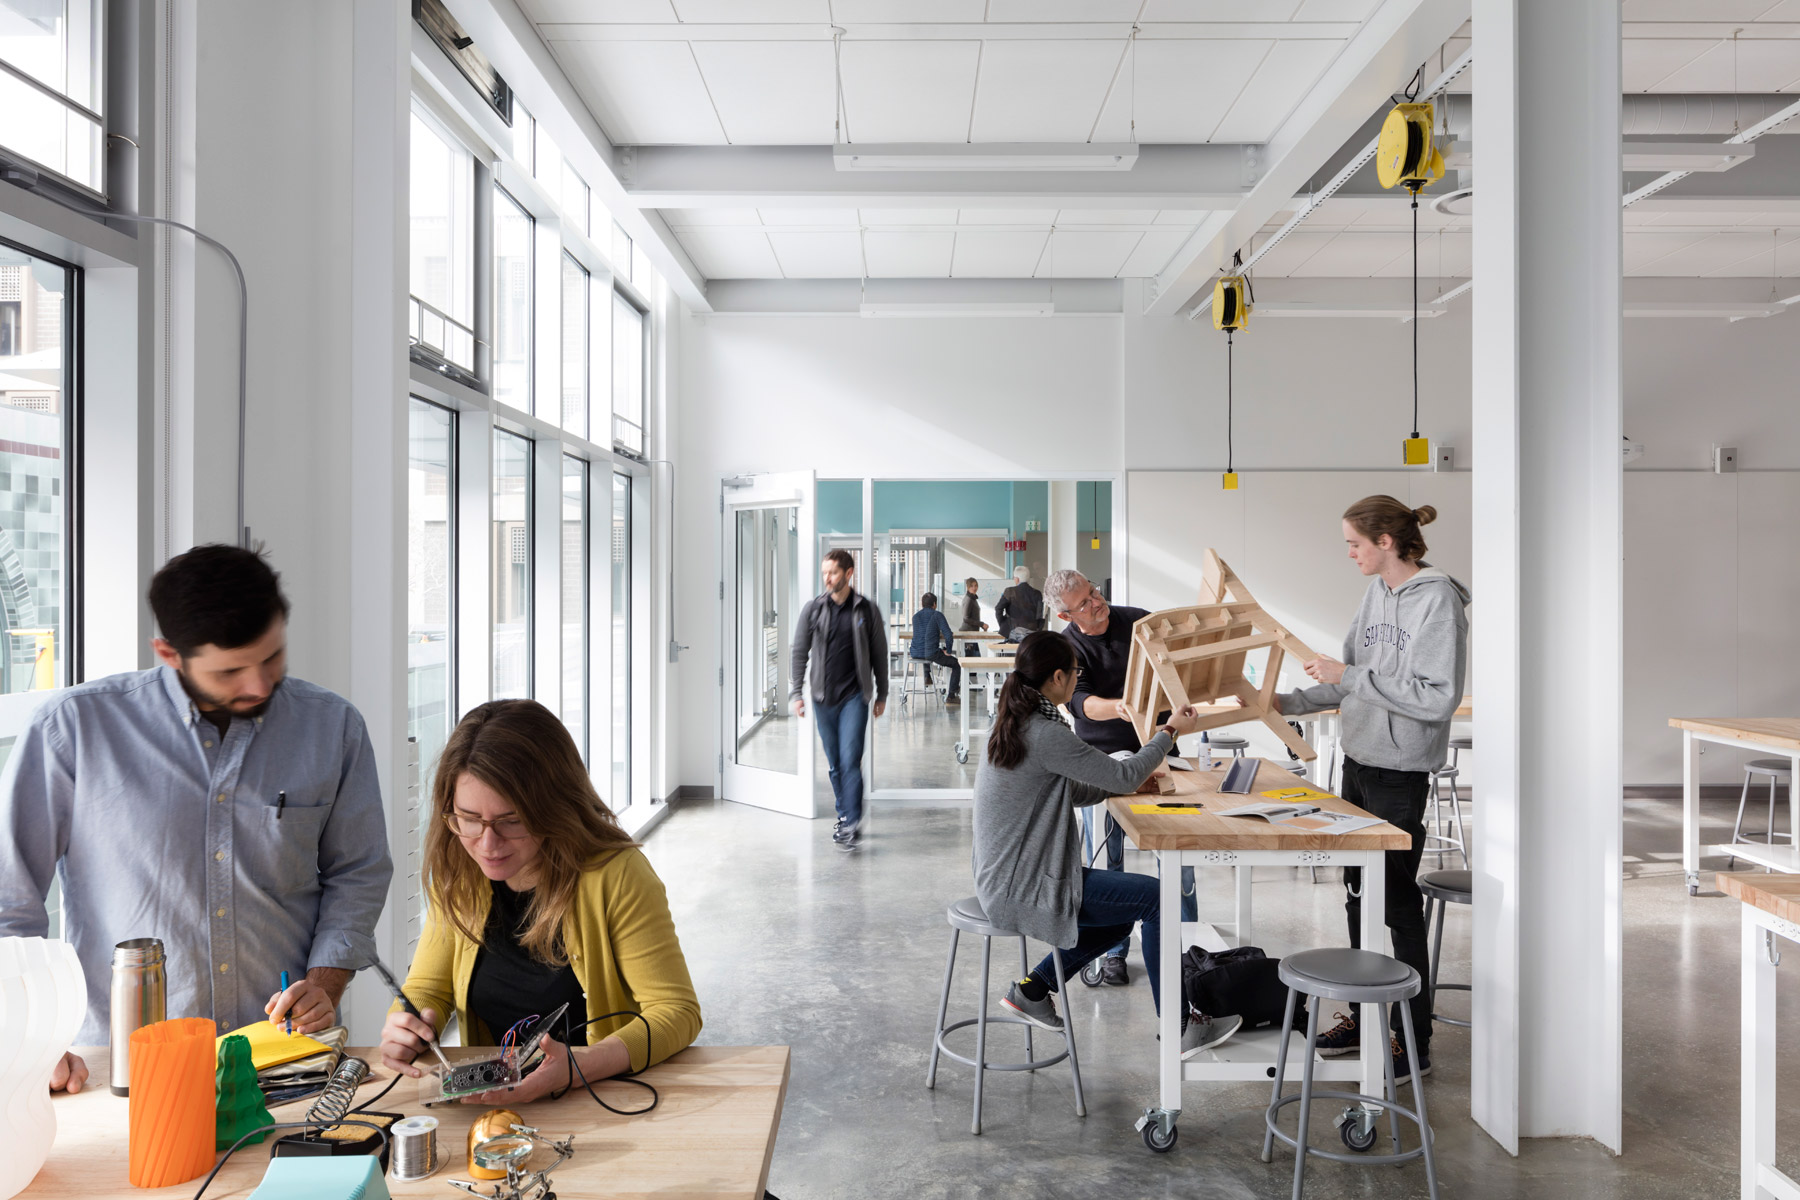 The Jacobs Institute for Design Innovation is a beacon of sustainable innovation at the UC Berkeley campus in the Bay Area, providing a variety of flexible maker spaces that foster interdisciplinary, collaborative creativity.